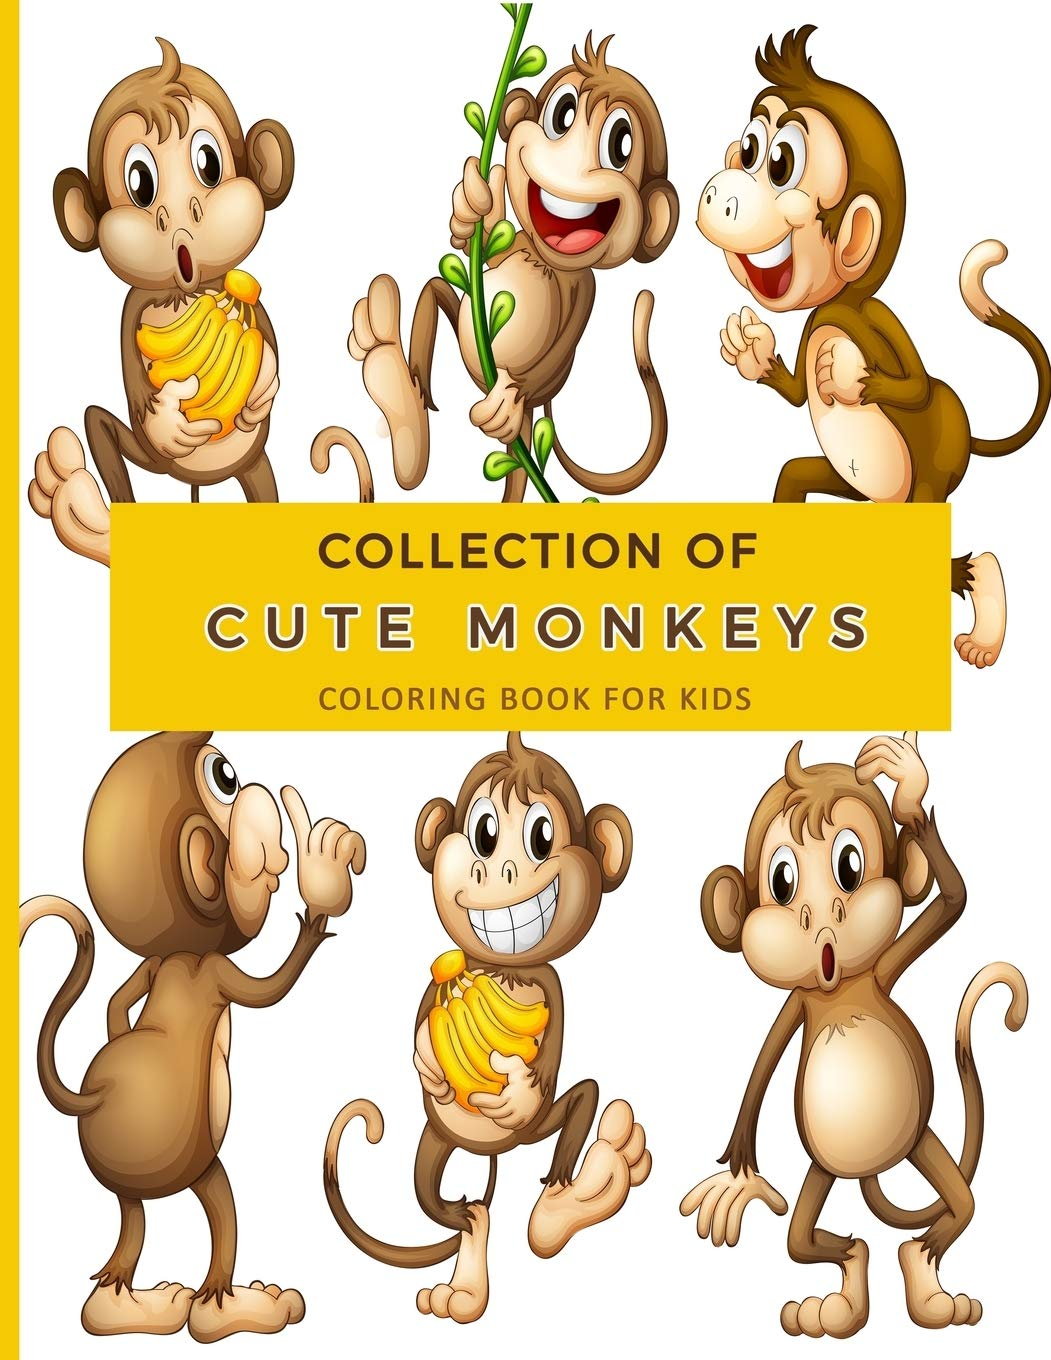 Collection Of Cute Monkeys Coloring Book For Kids Fun Easy And Relaxing Pages Relaxation And De Stress Relief Activity Sheets Images To Inspire Creativity Reduce Stress Color Therapy Designs Dazenmonk 9781077835641